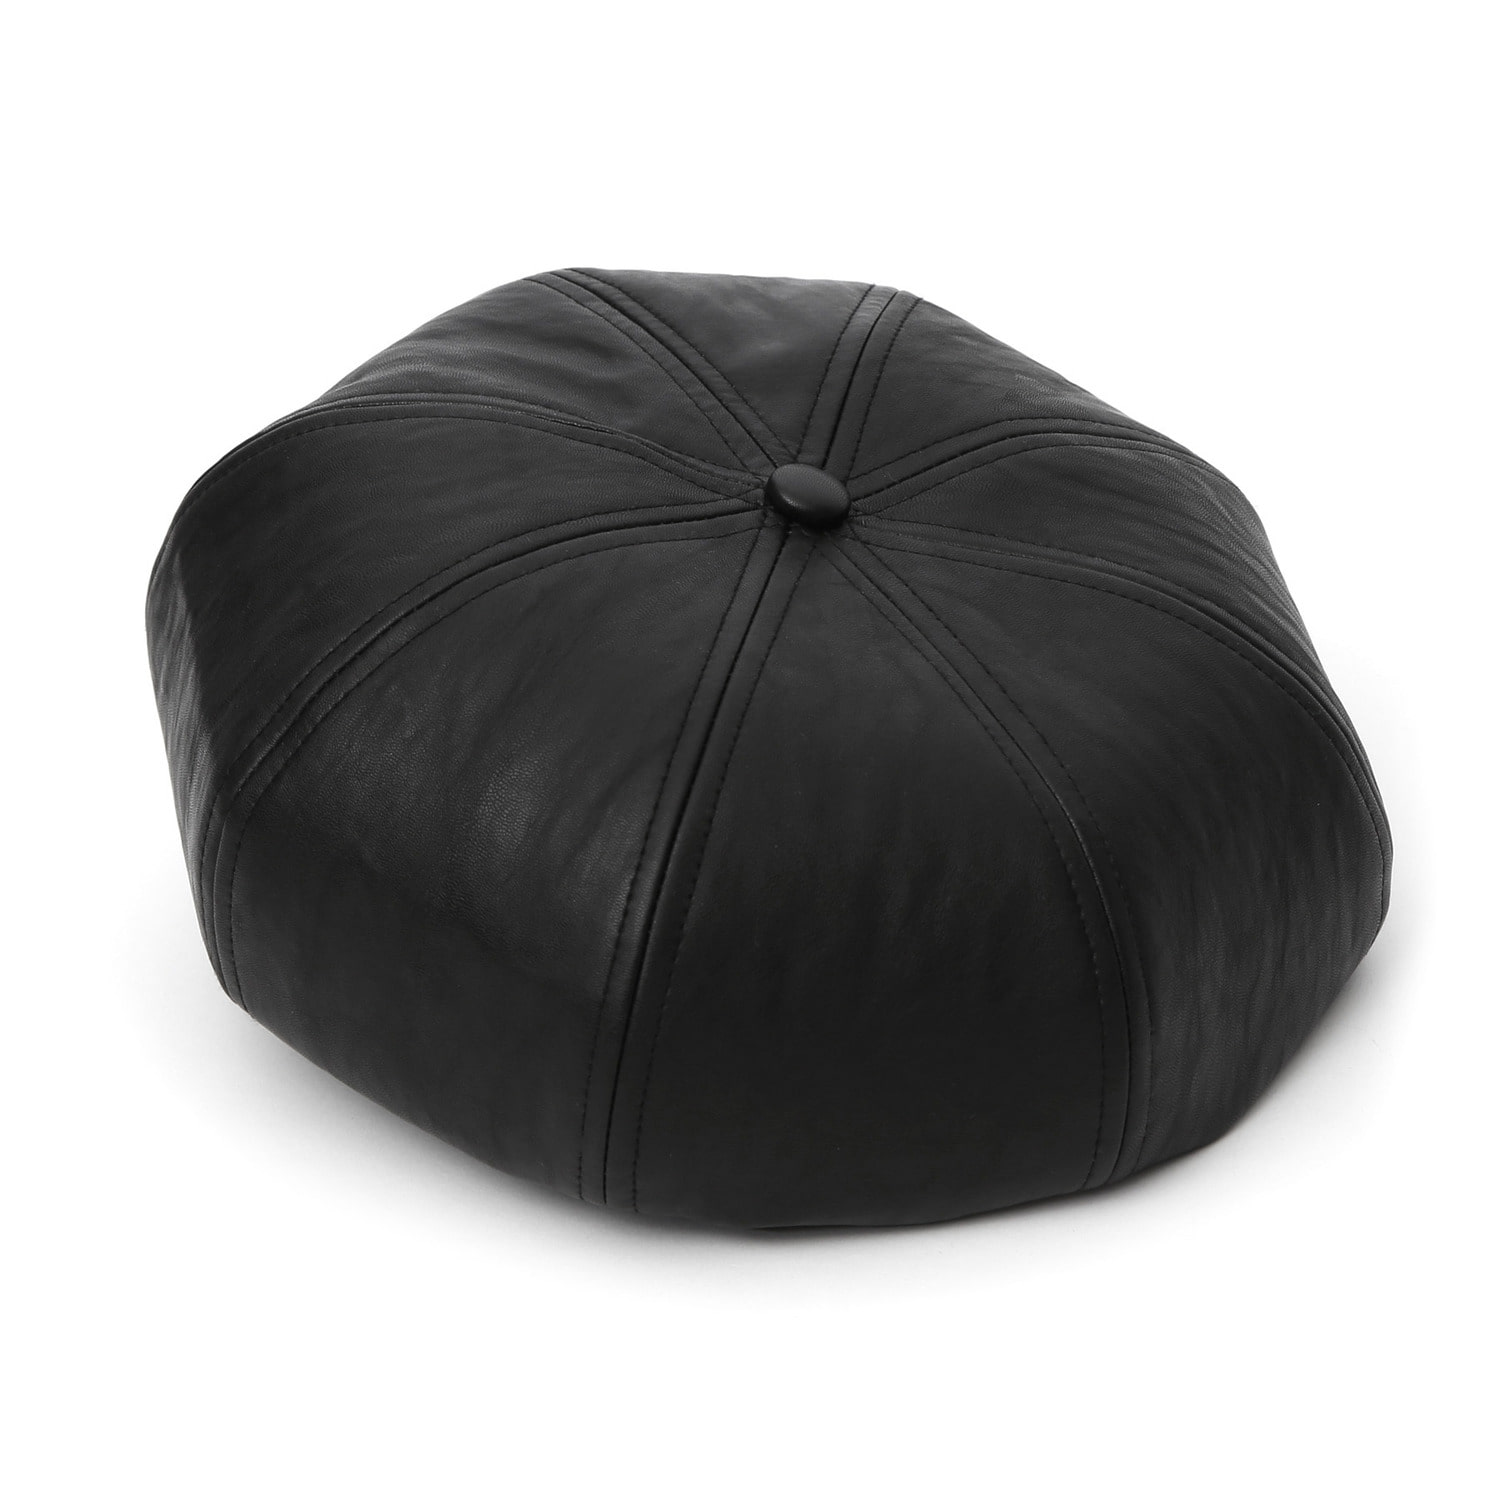 [3차 재입고] BREAD BERET / LEATHER / M BLACK